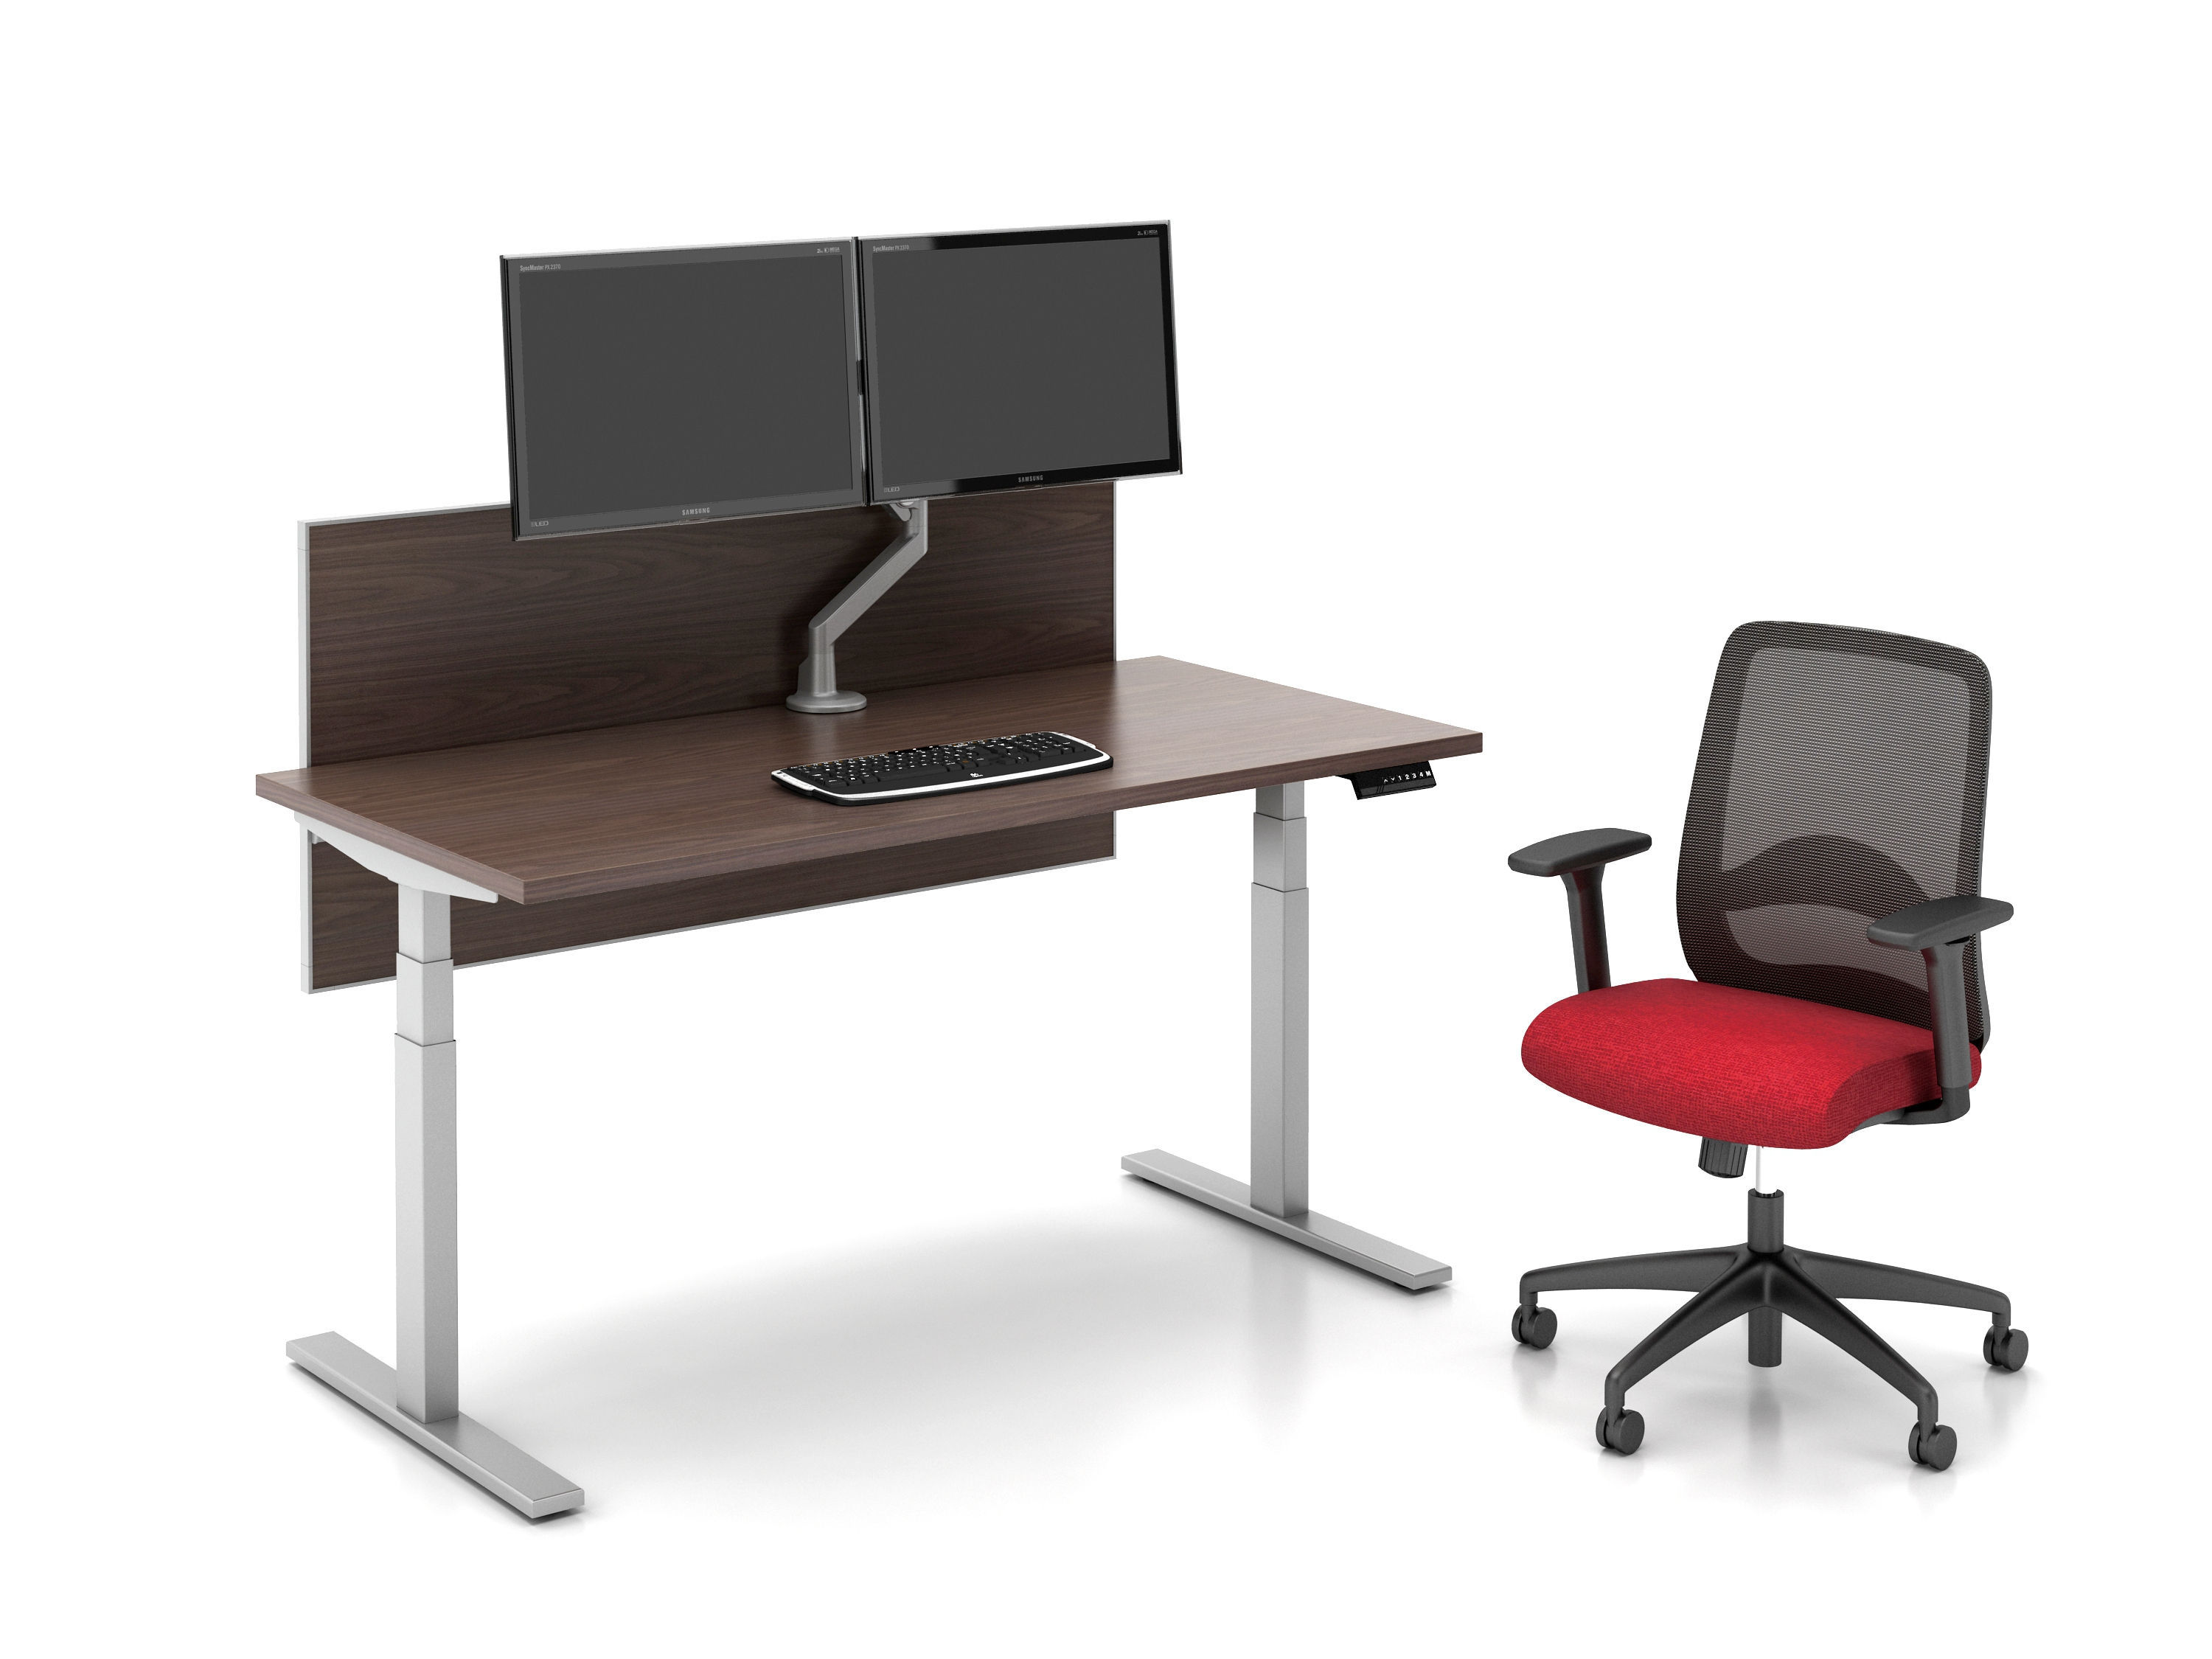 Day-to-Day Height Adjustable Table at seated height